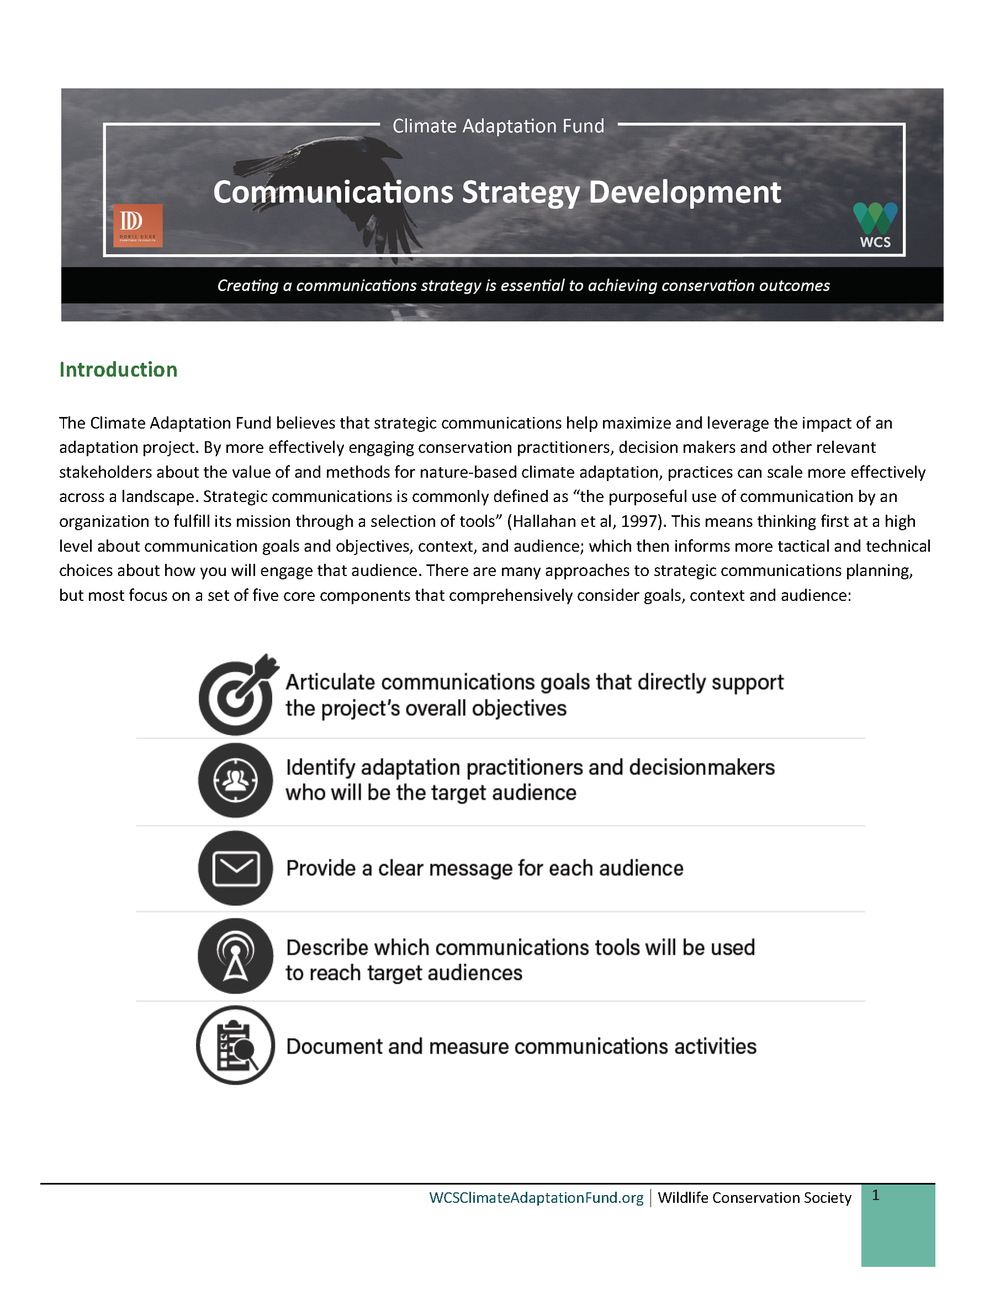 Strategic Communications Guide   Strategic communications are vital to improving conservation outcomes. This guide presents a step-by-step guide on why and how to incorporate strategic communications actions into your project.